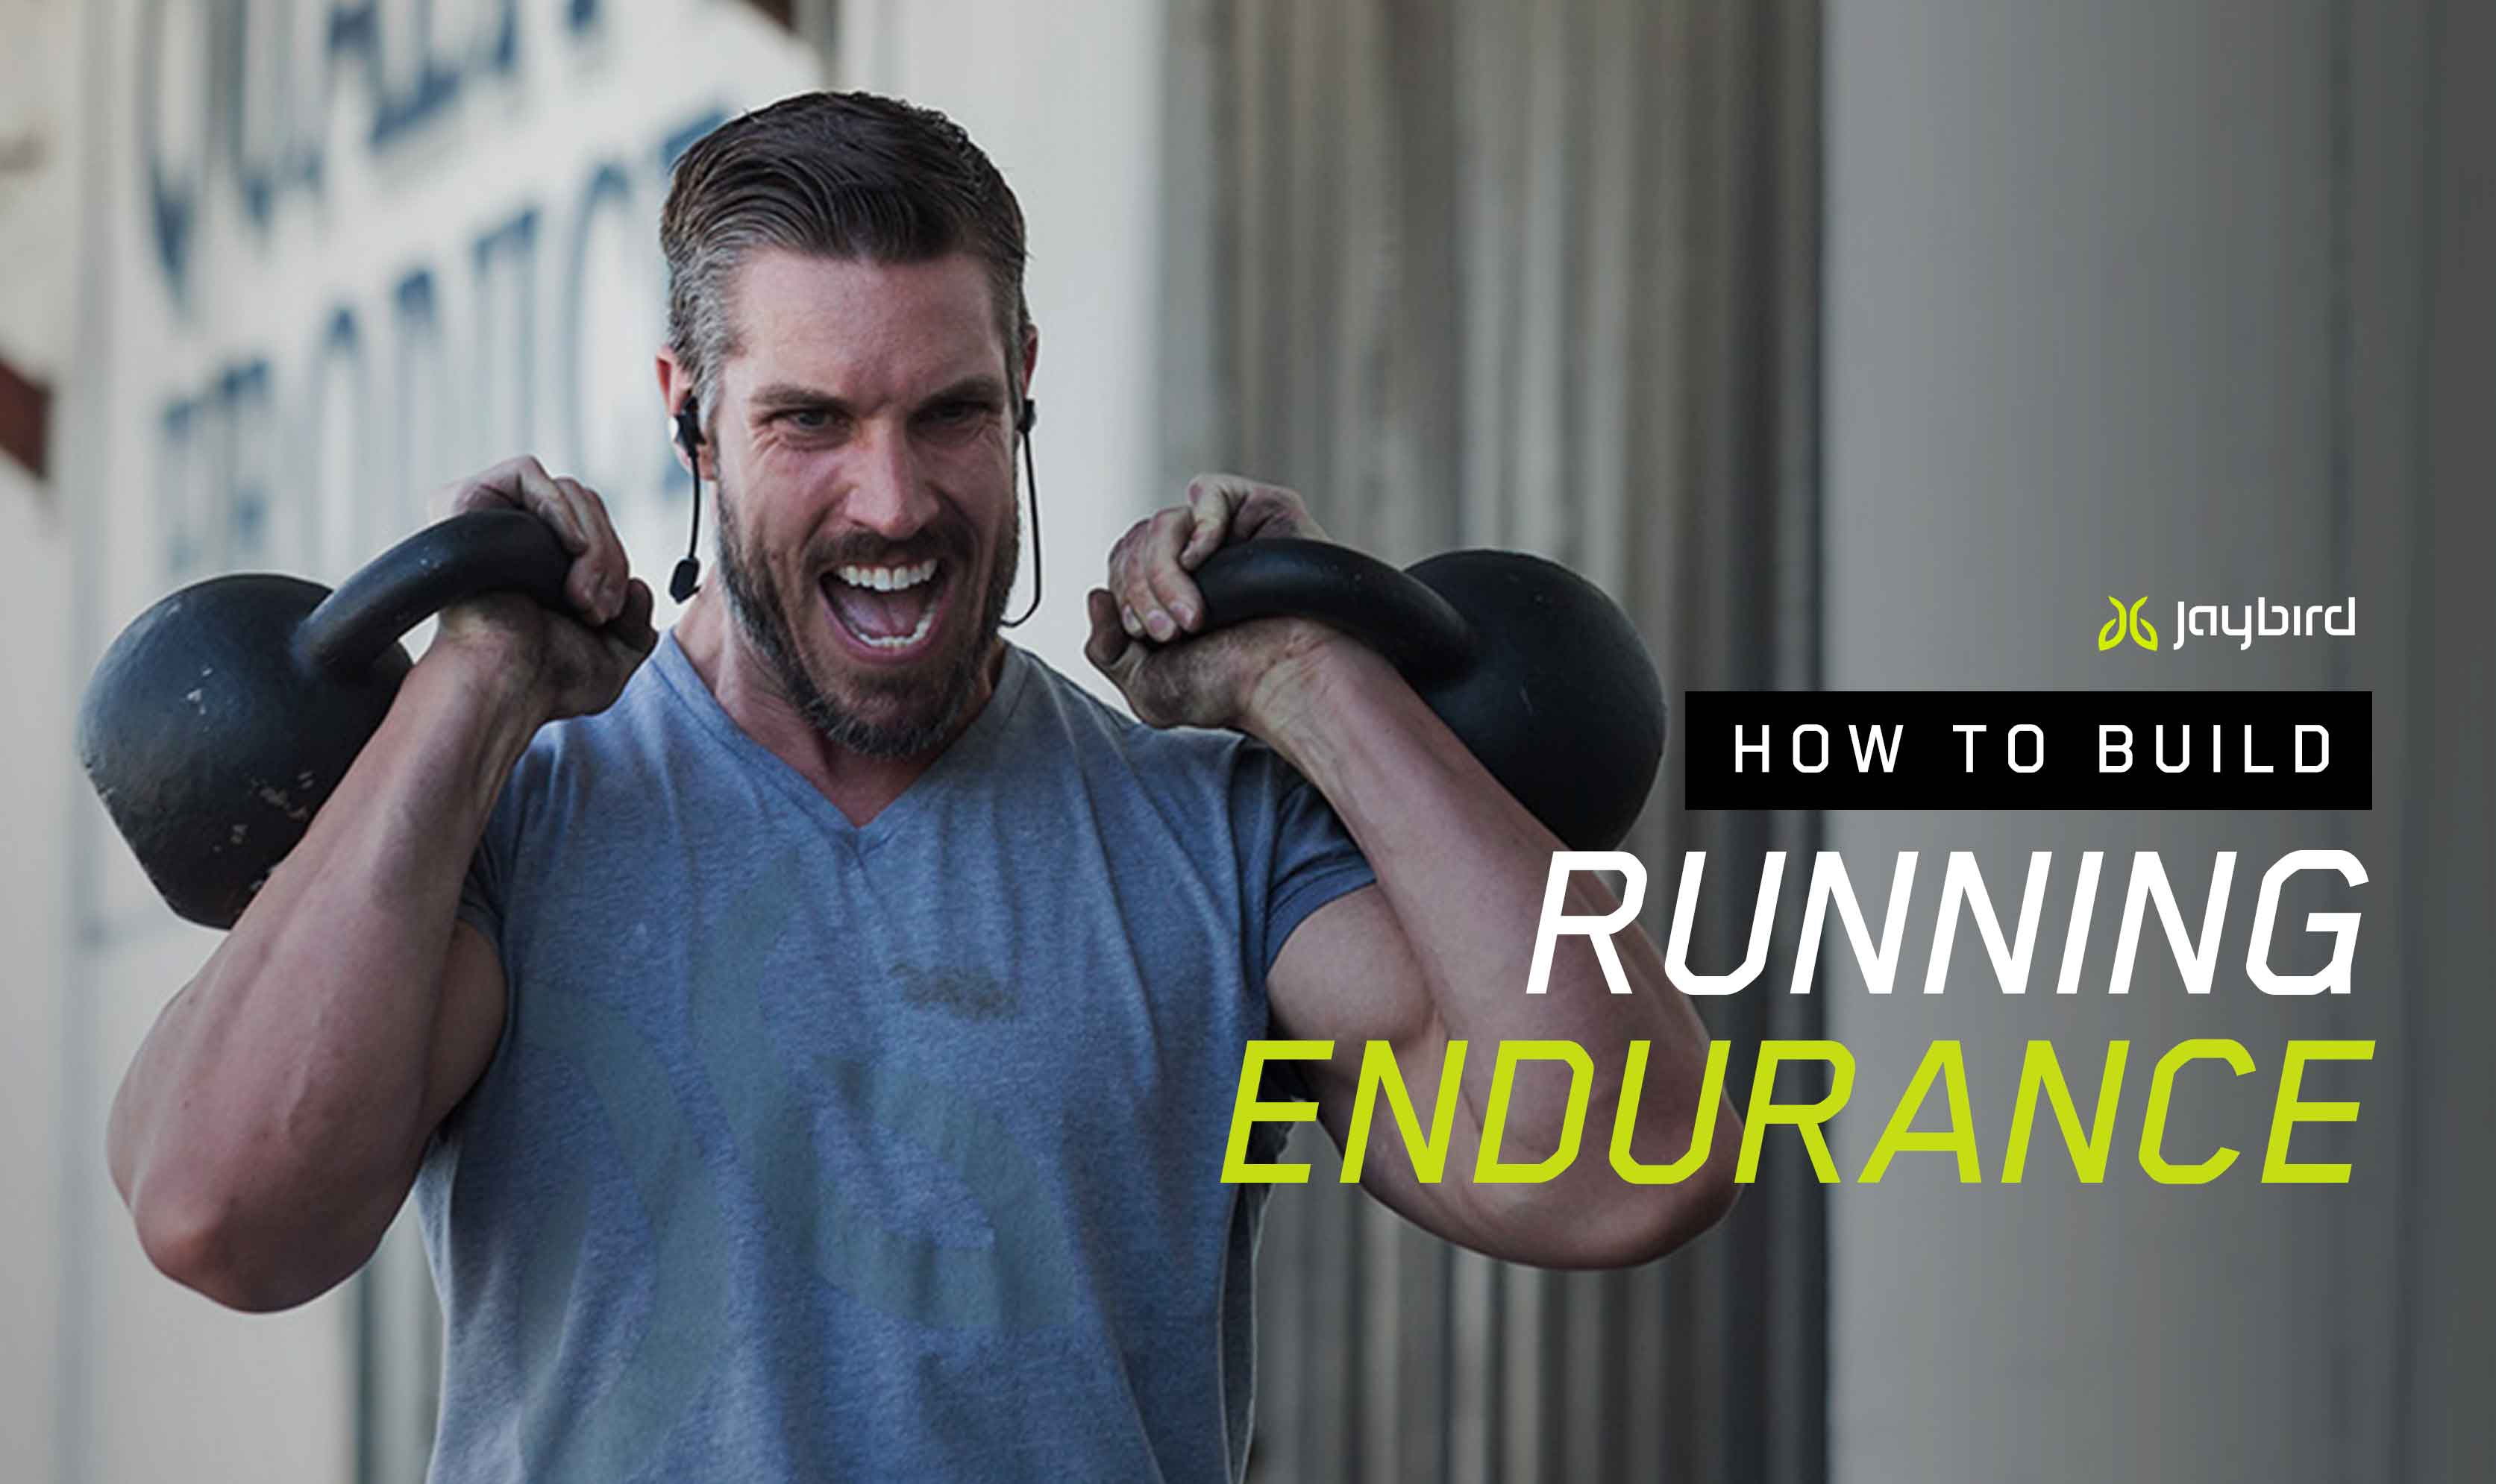 How to Build Running Endurance